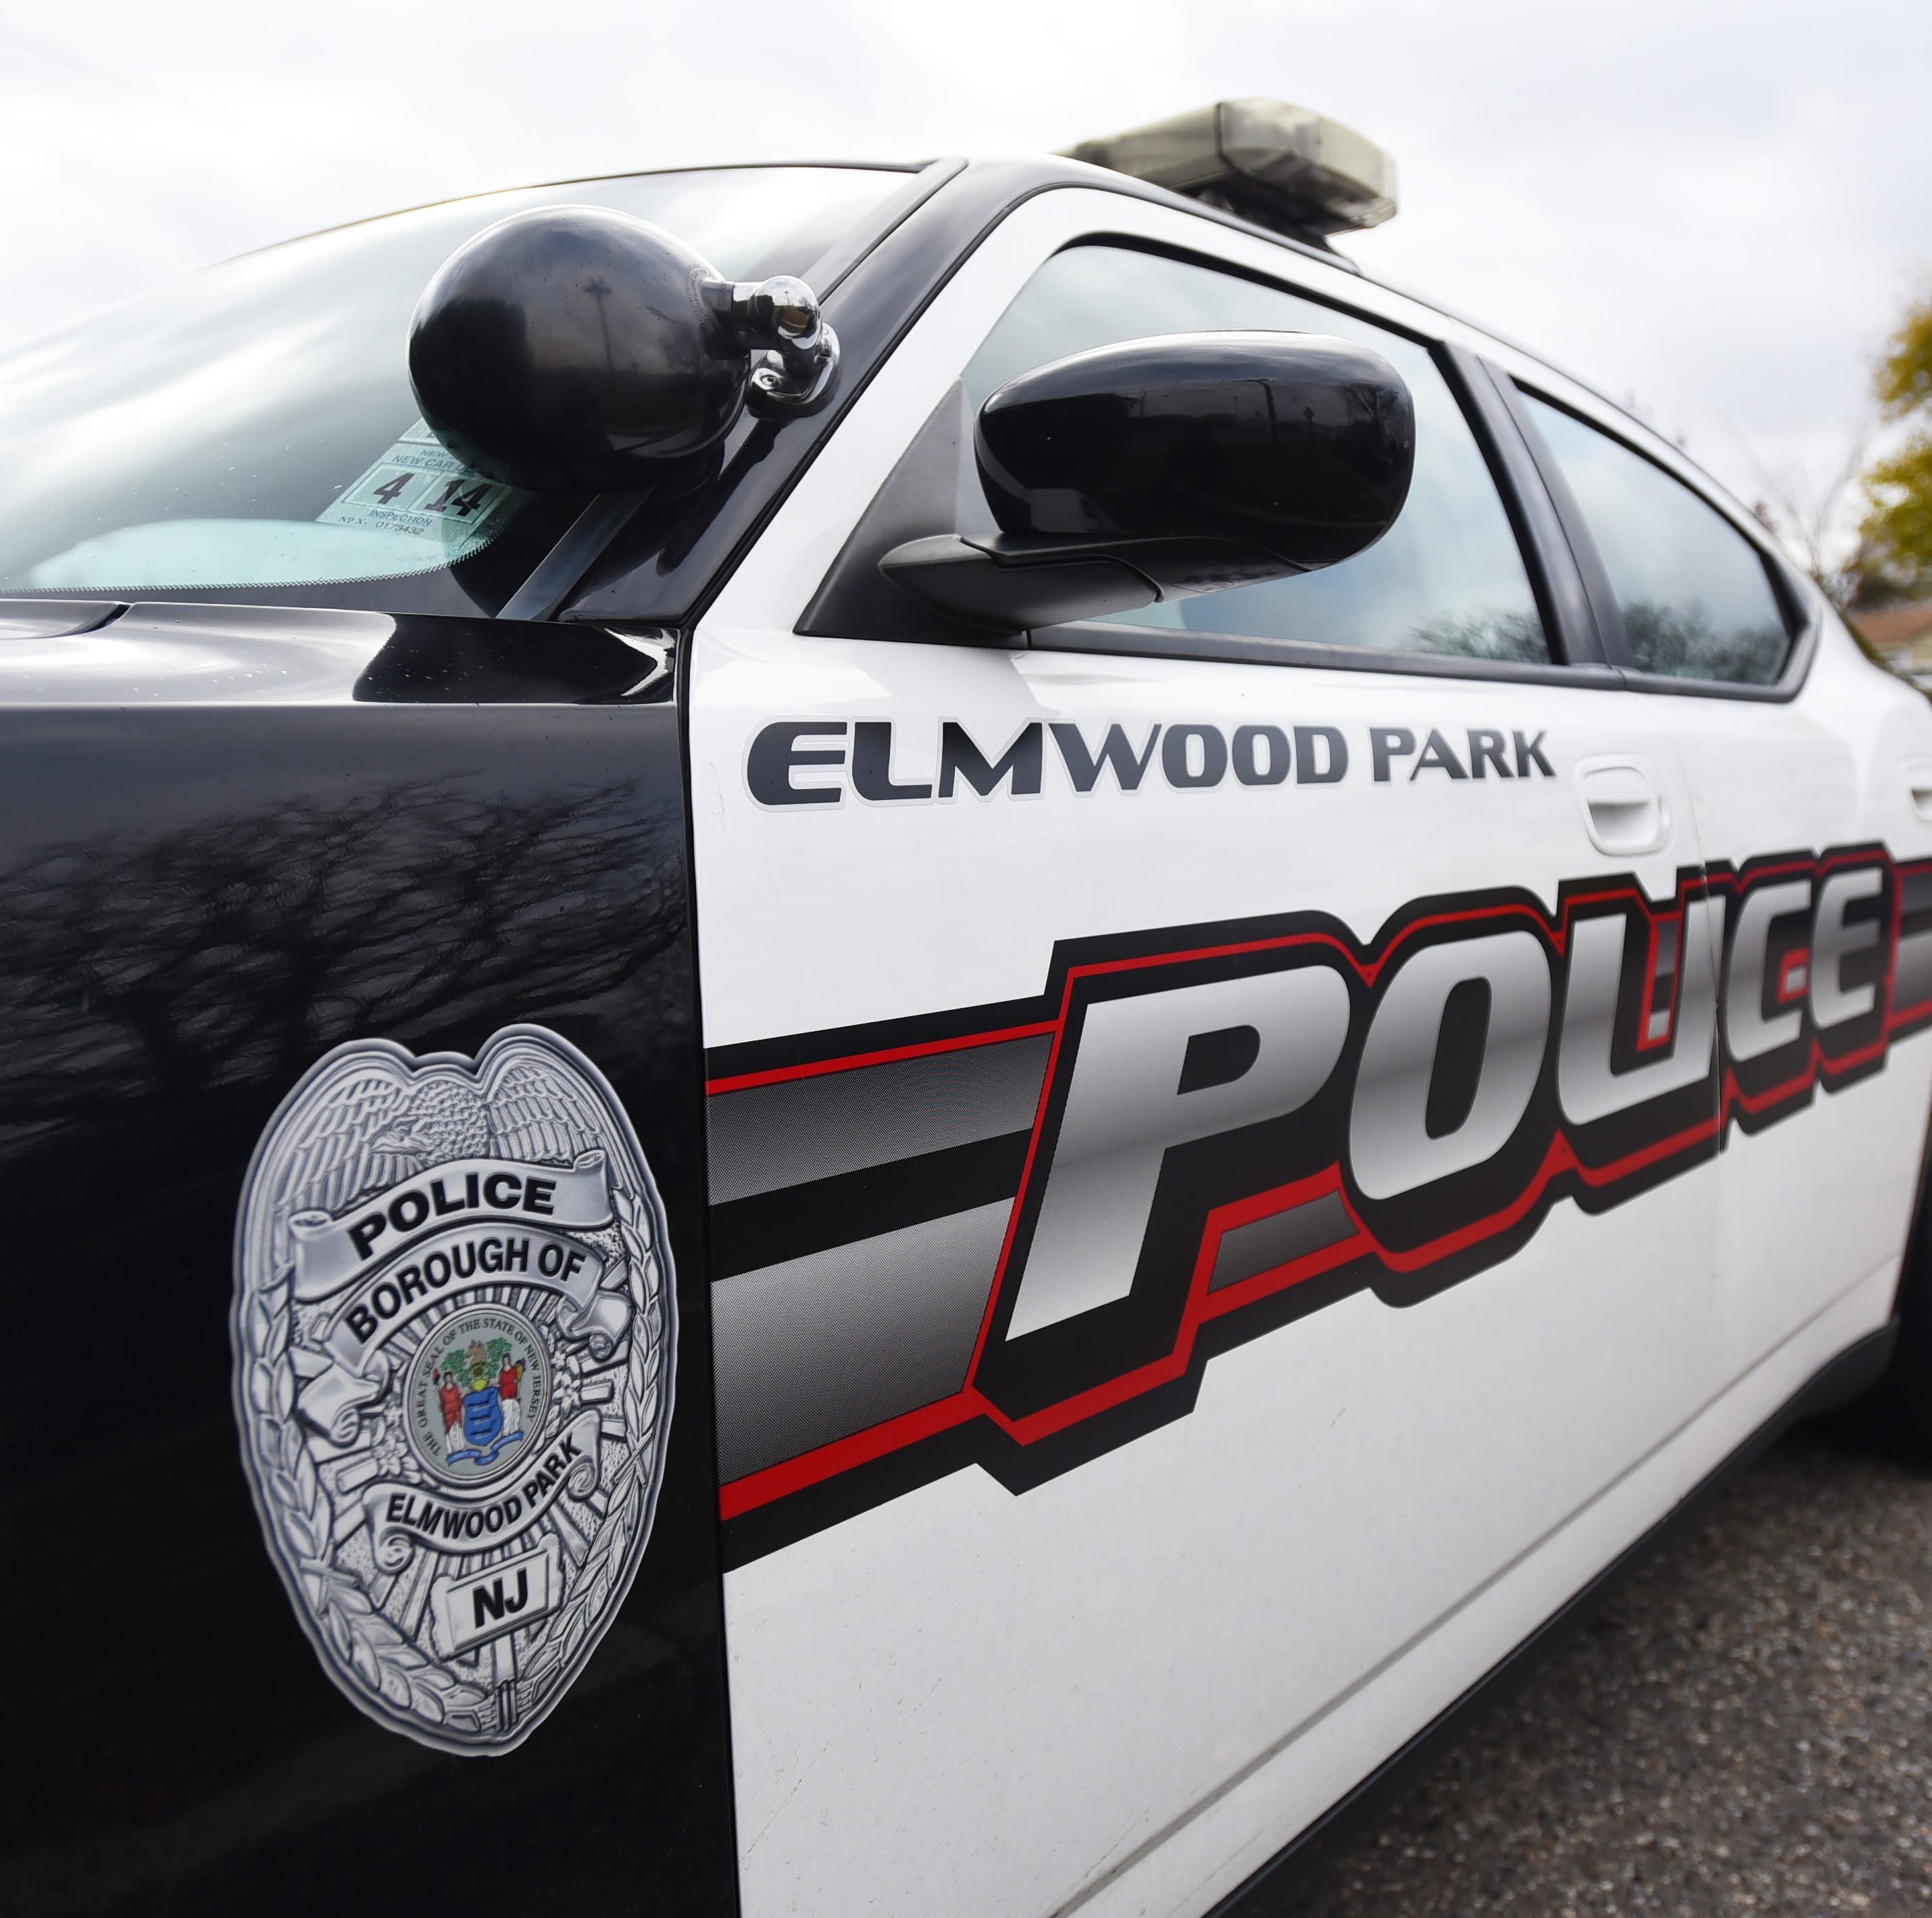 Elmwood Park cops claim multiple firings are based on discrimination, retaliation